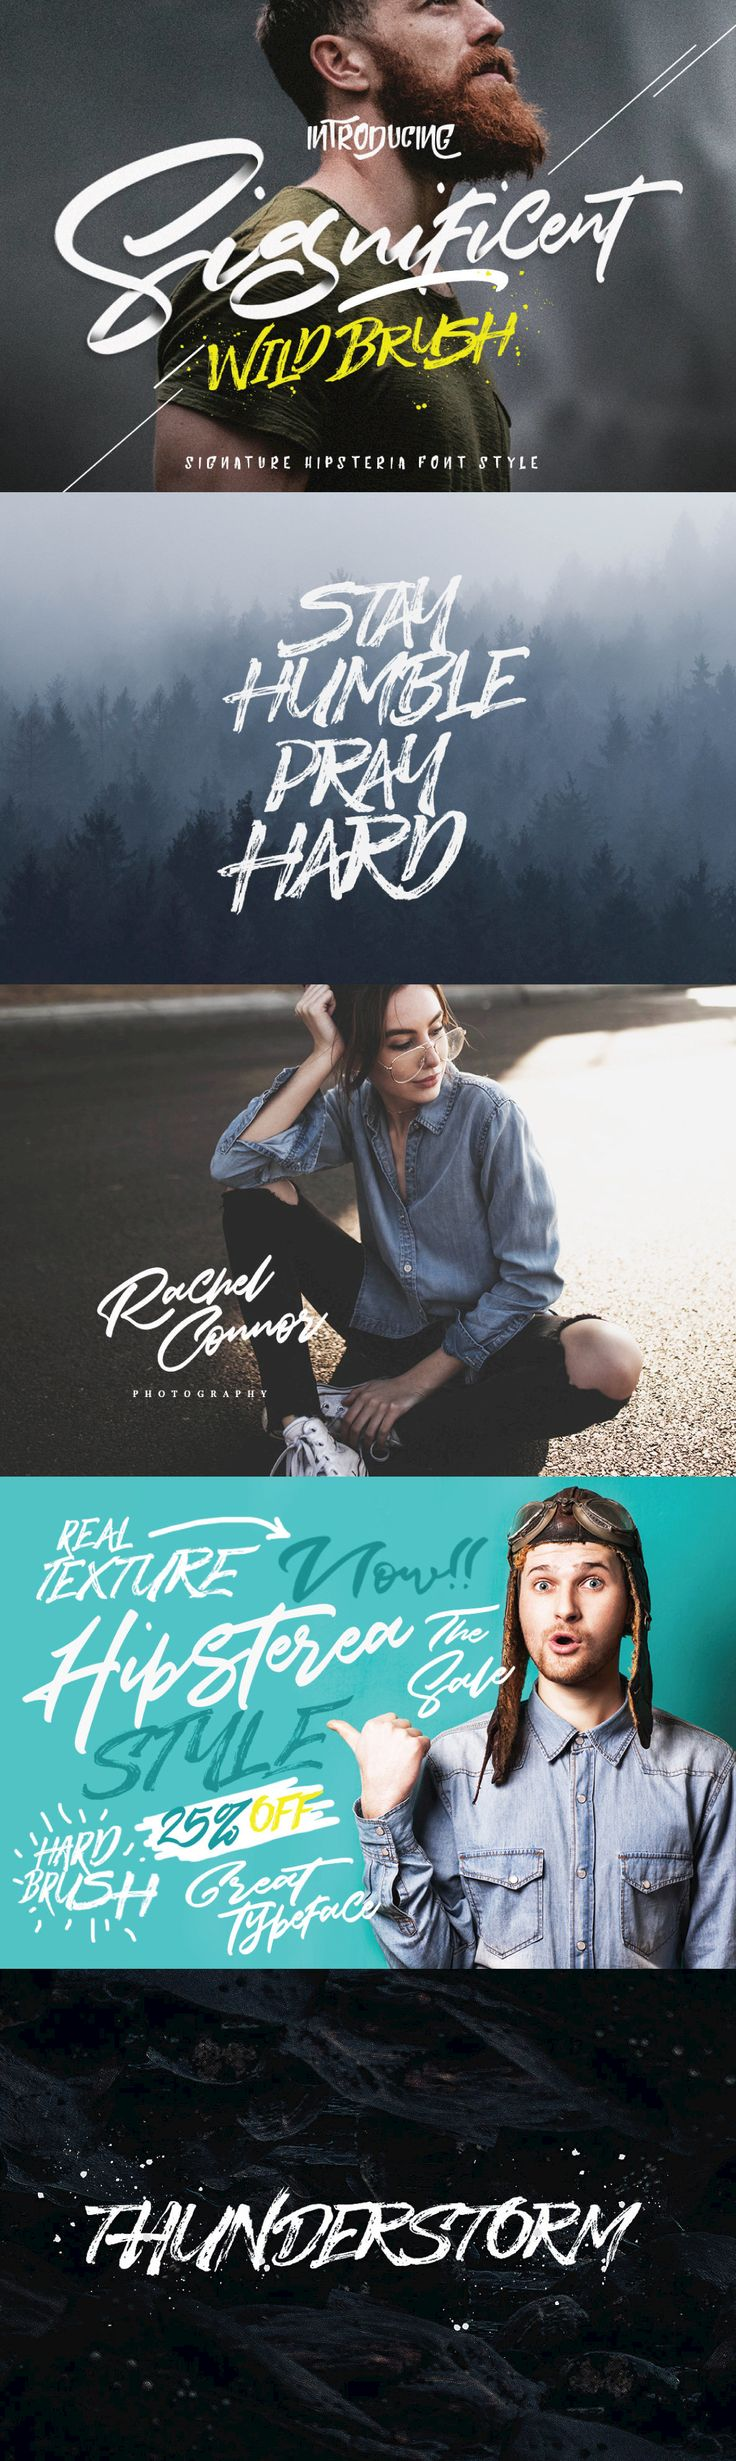 Significent WildBrush - A modern script font design published by Dirtyline Studio.